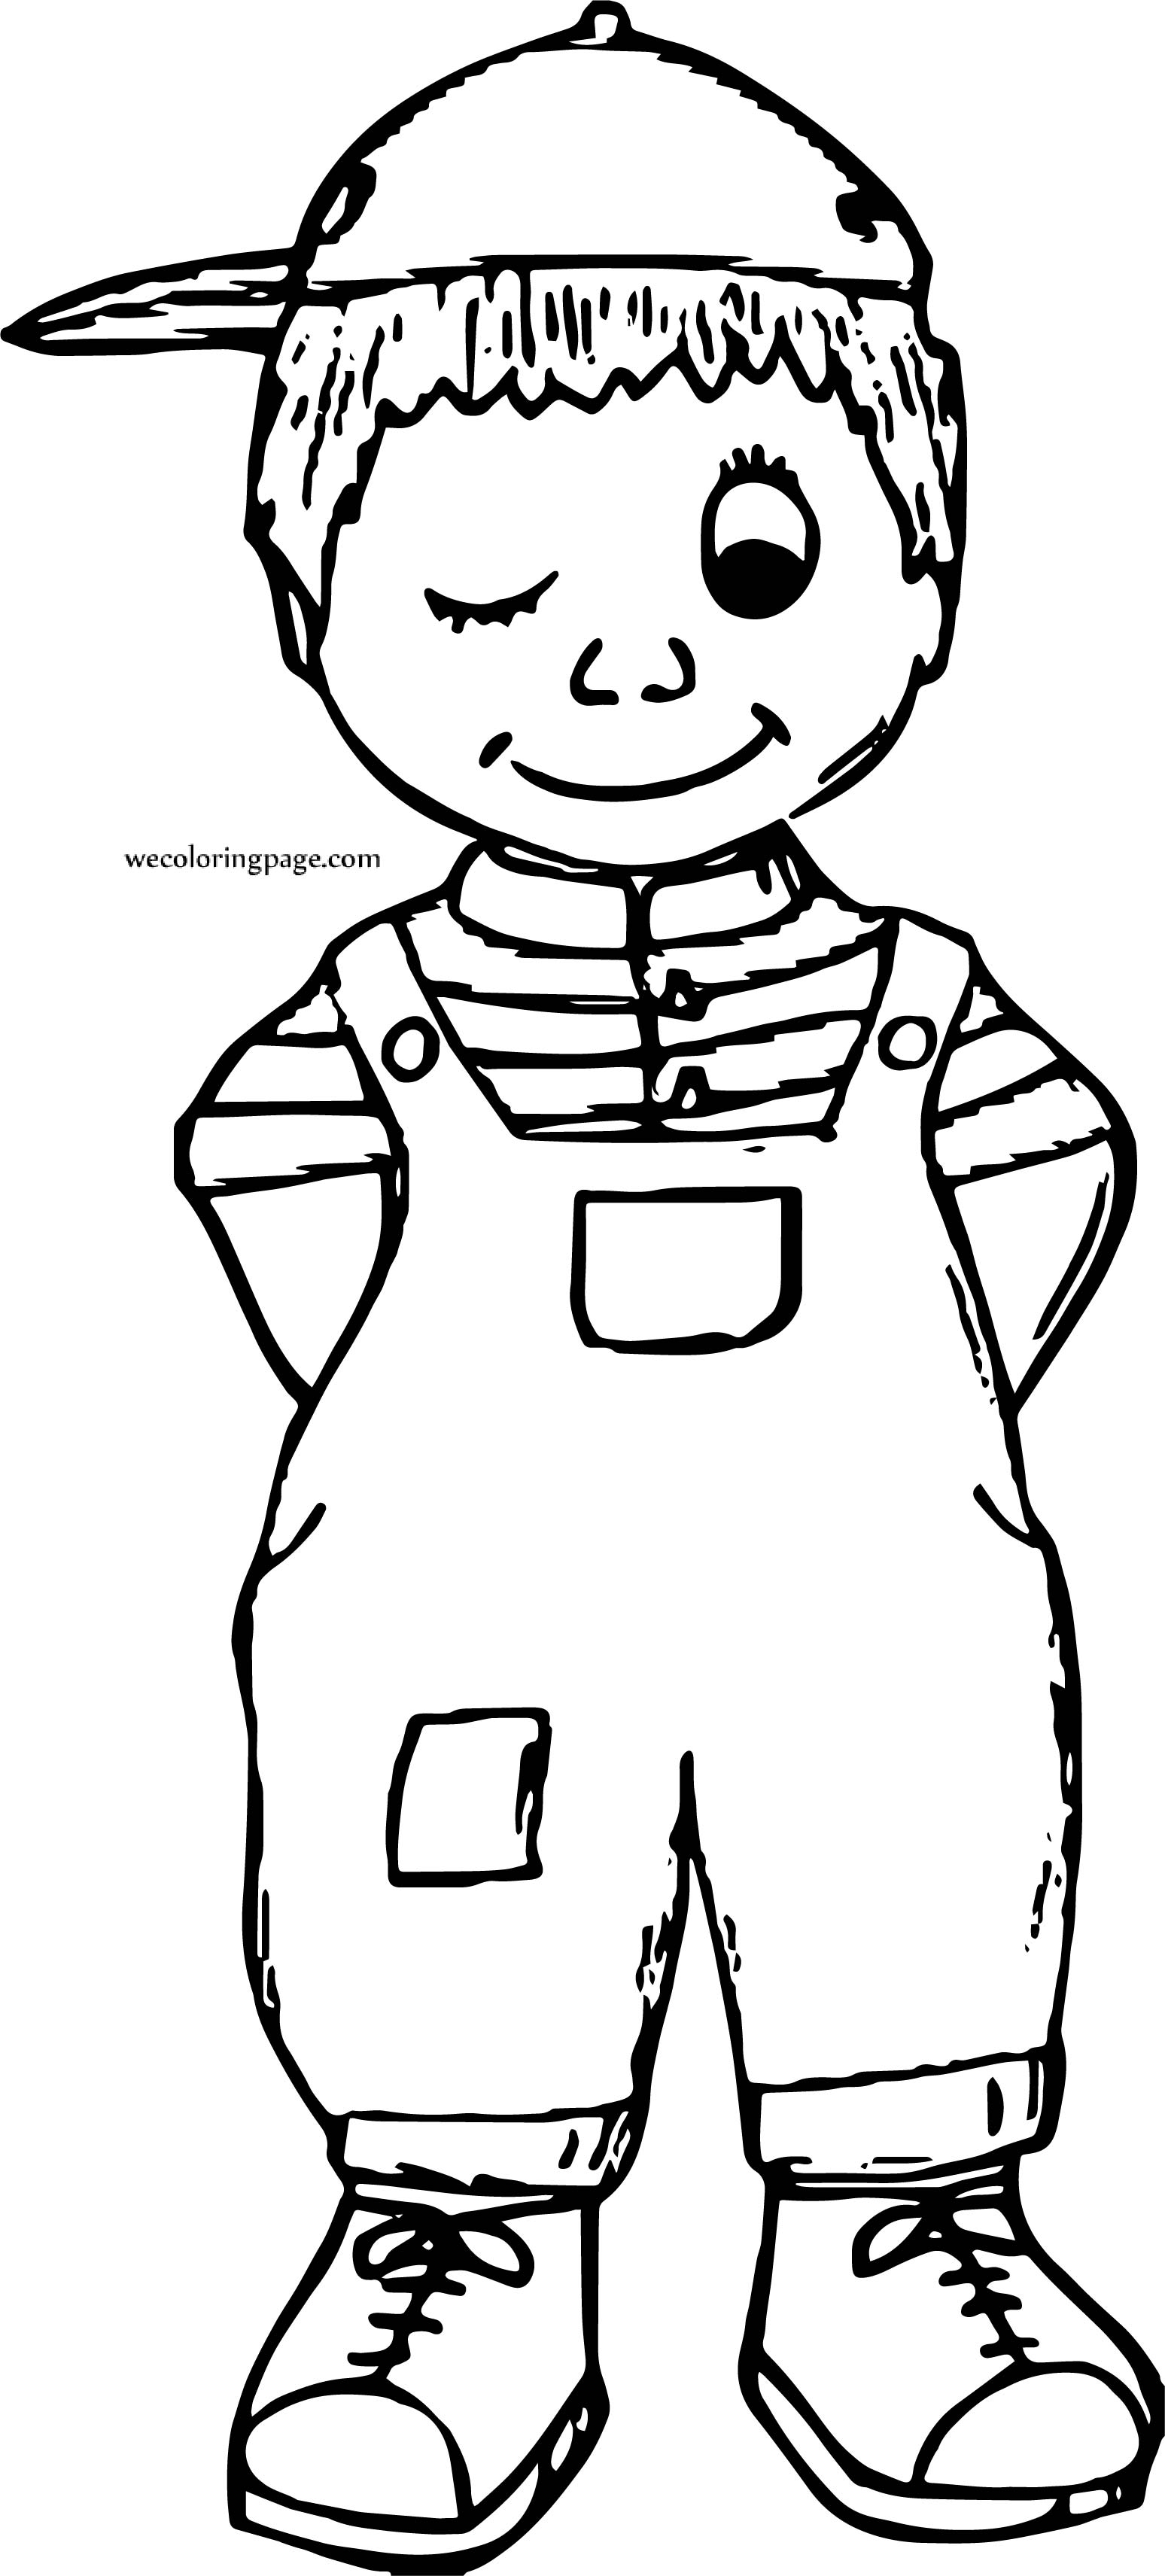 In Boy Wink Coloring Page